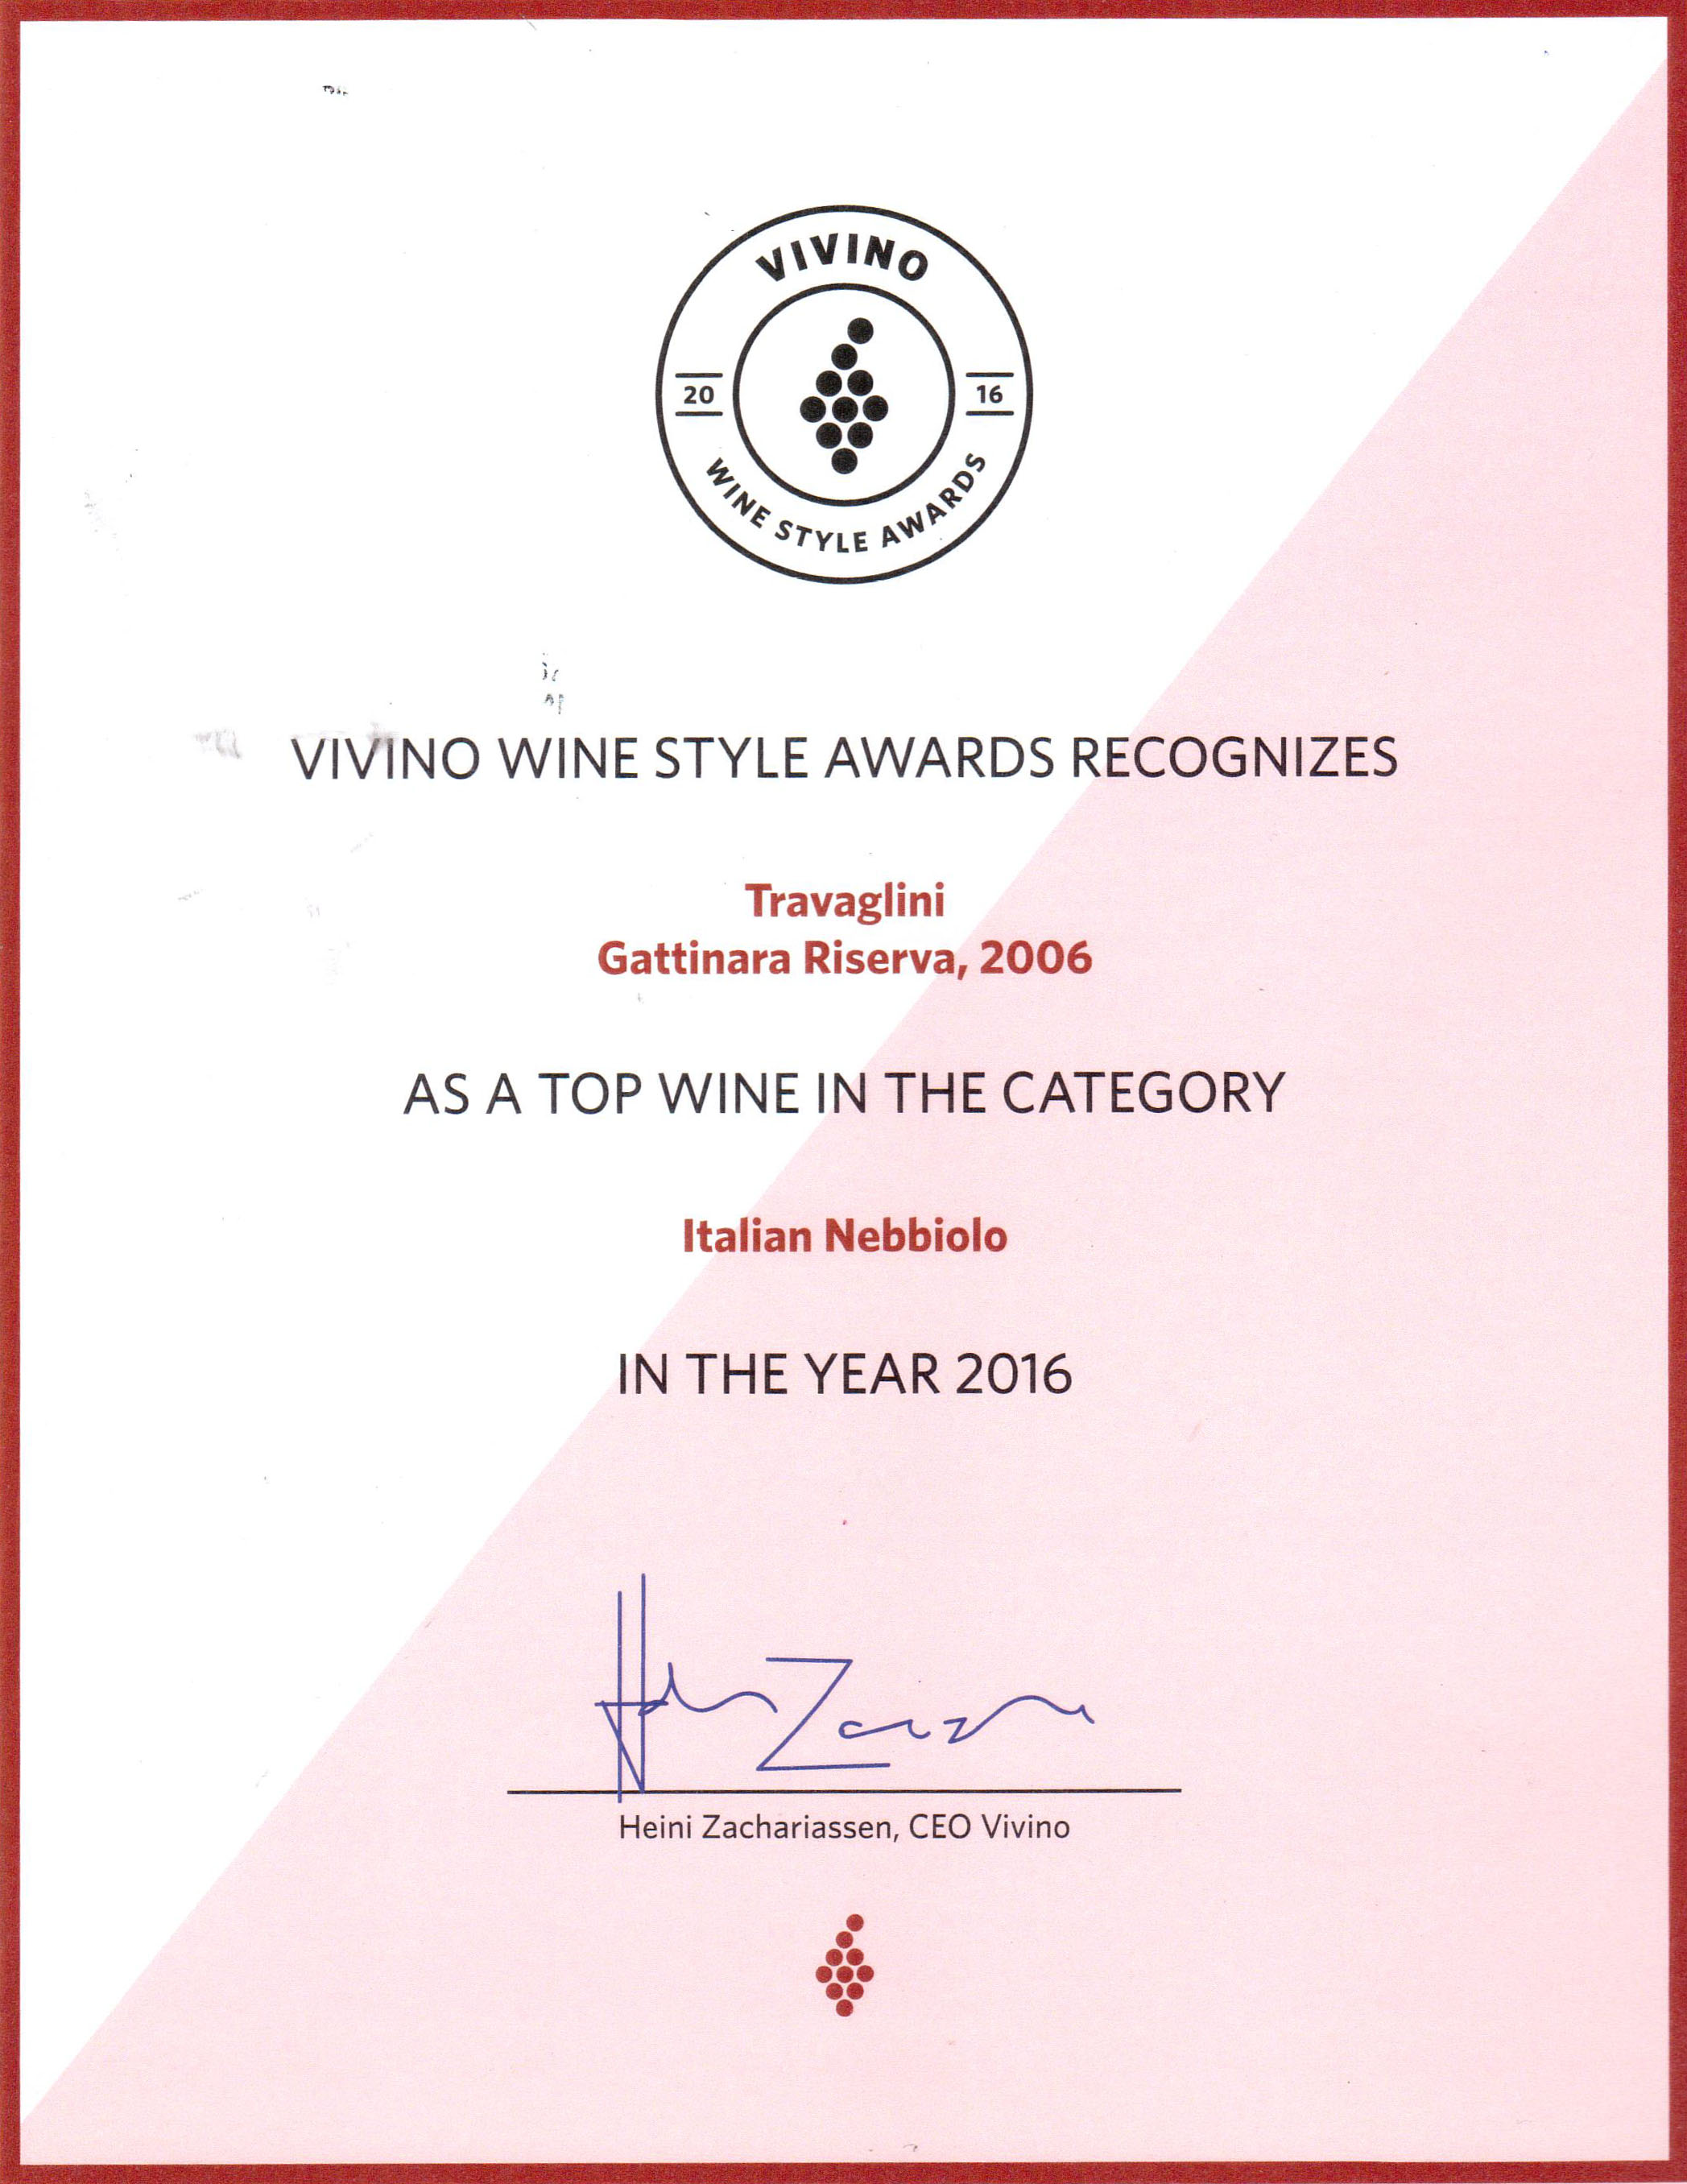 Premio Top Wine Vivino 2016